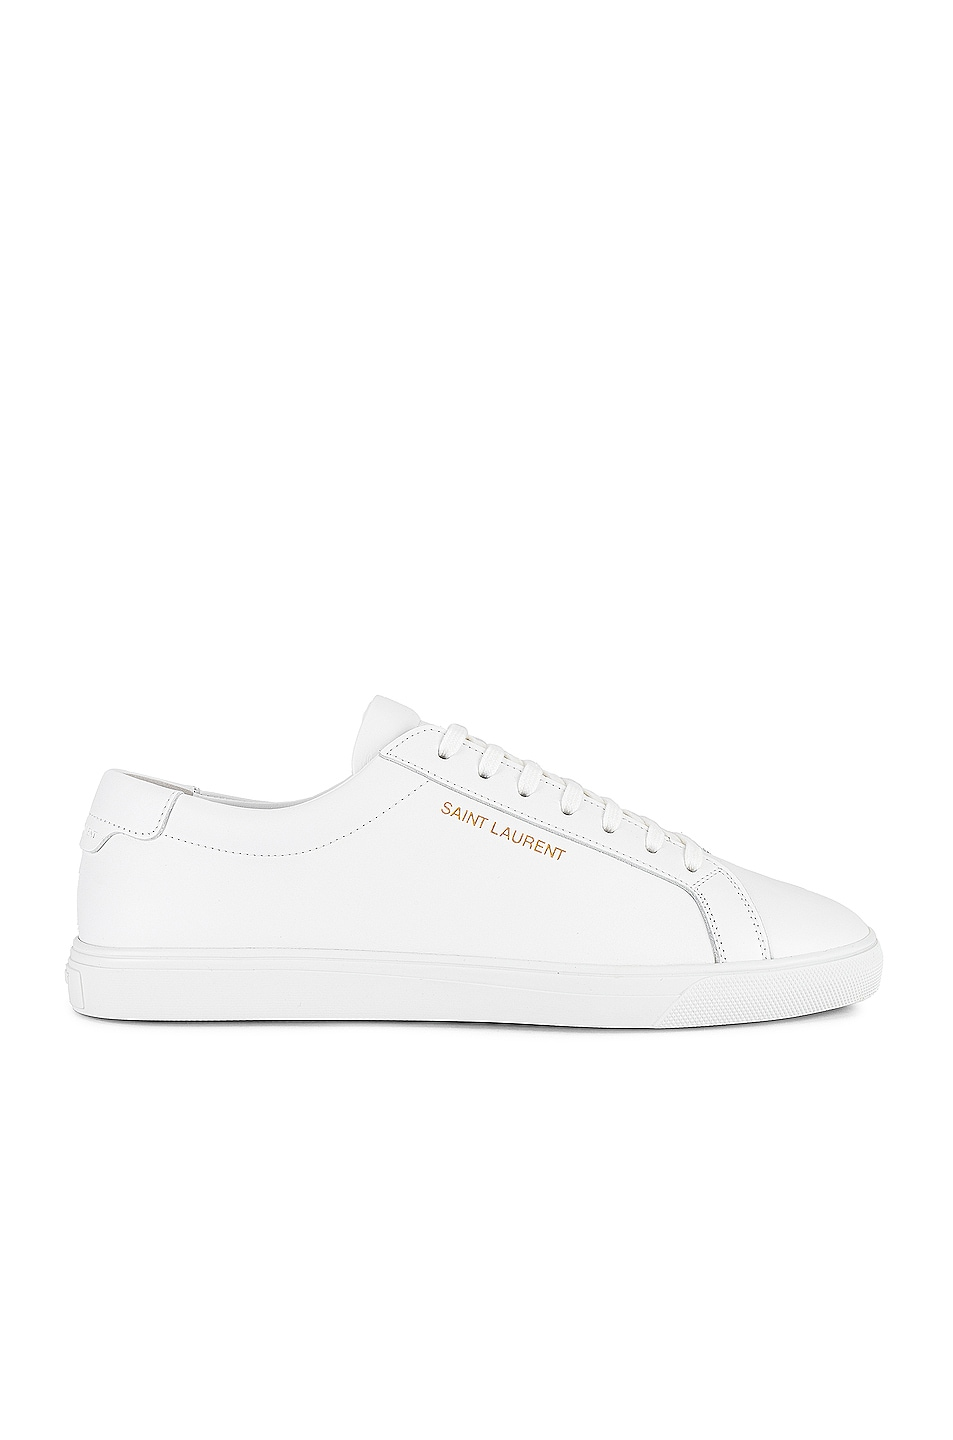 Image 1 of Saint Laurent Andy Sneaker in White